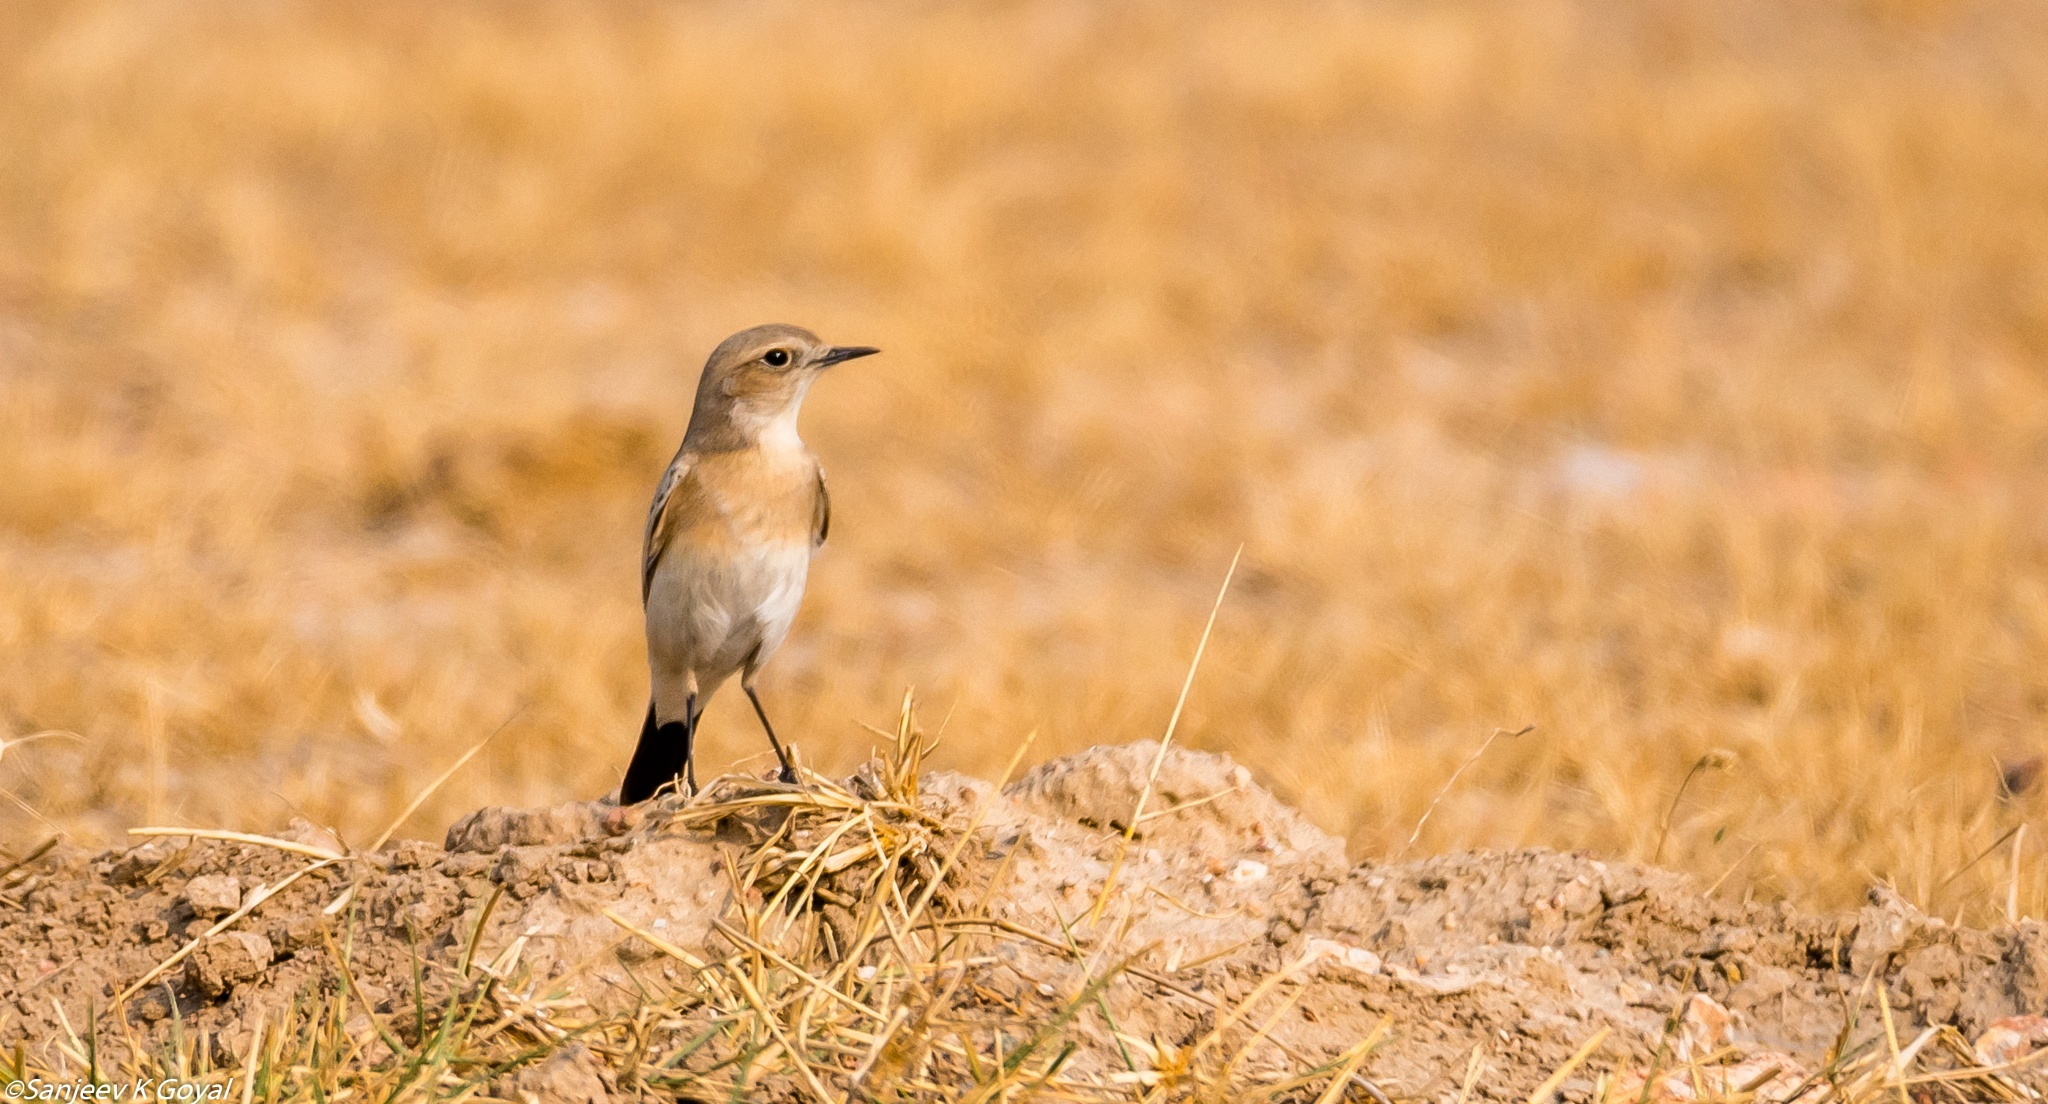 Desert wheatear by sanjeev.k.goyal.10